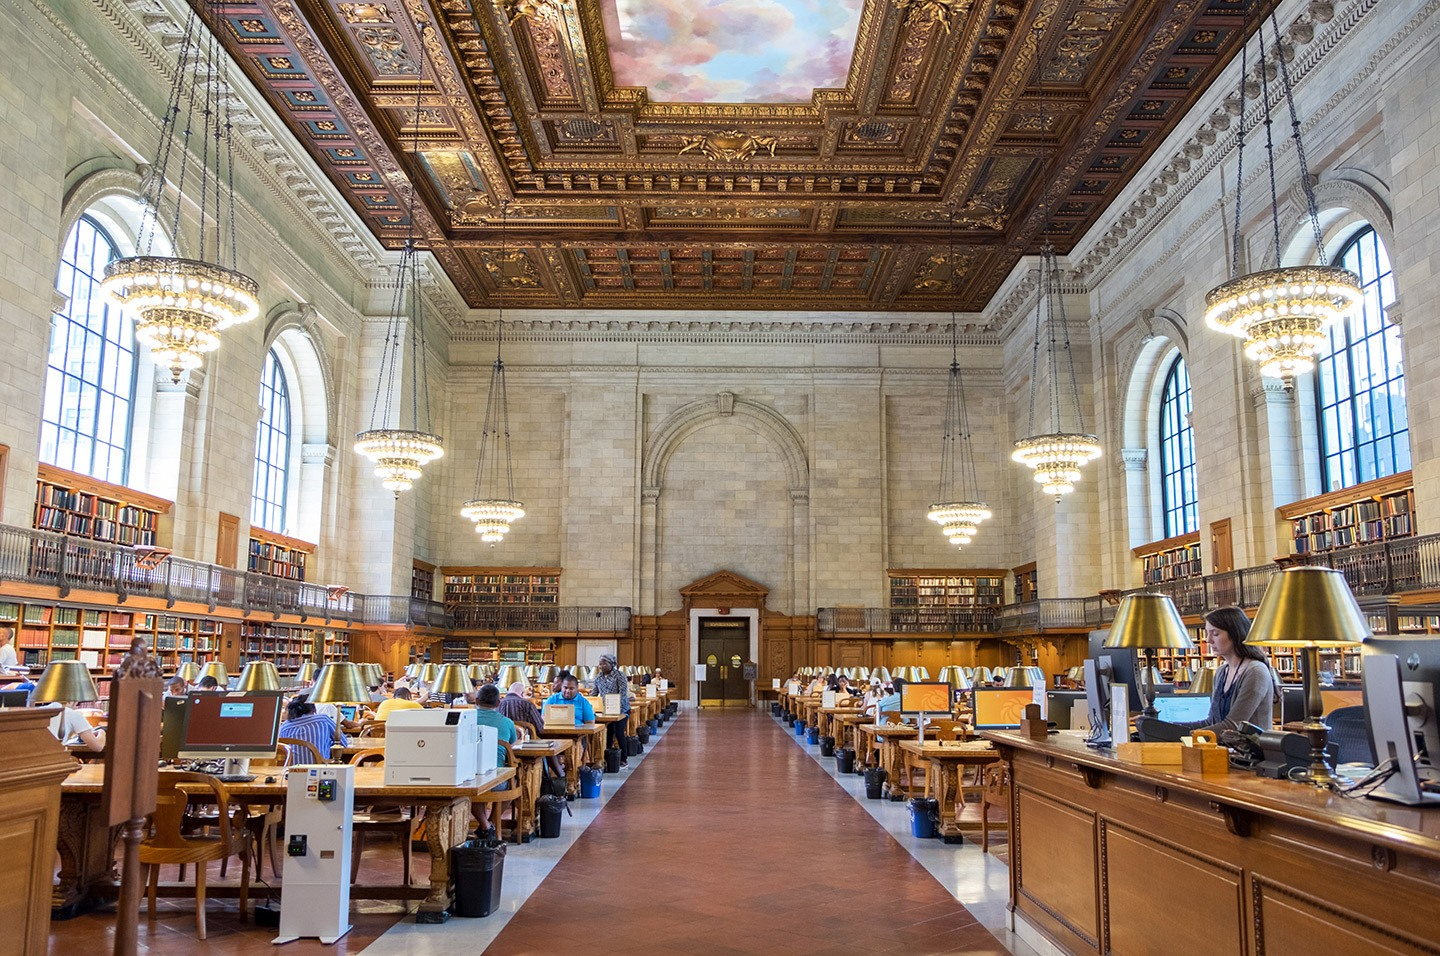 New York Public Library, New York, USA